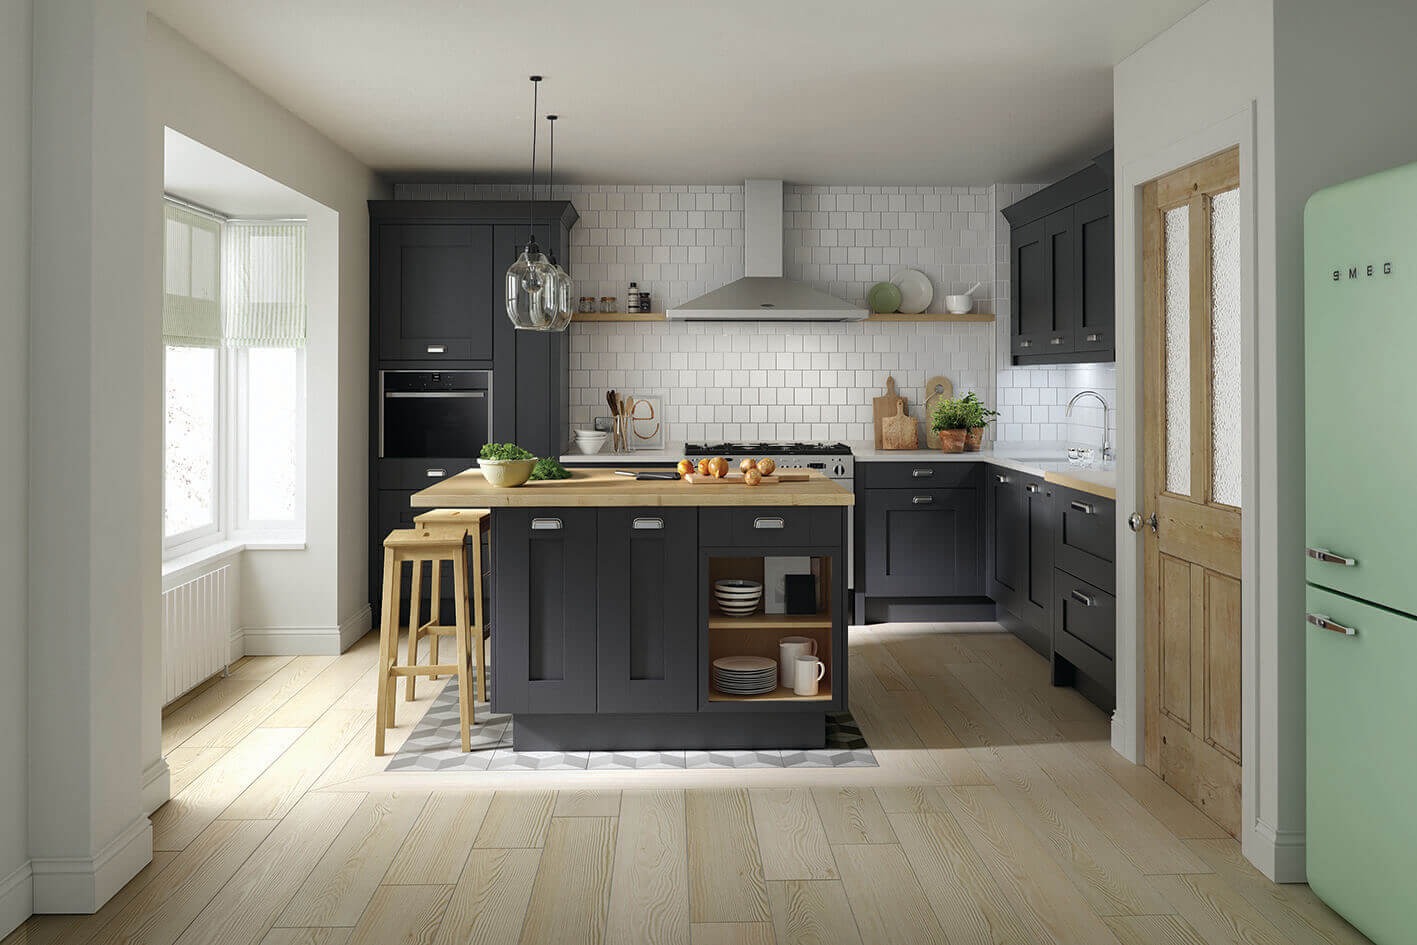 Alchemy-Kitchens-Milbourne-Gallery4